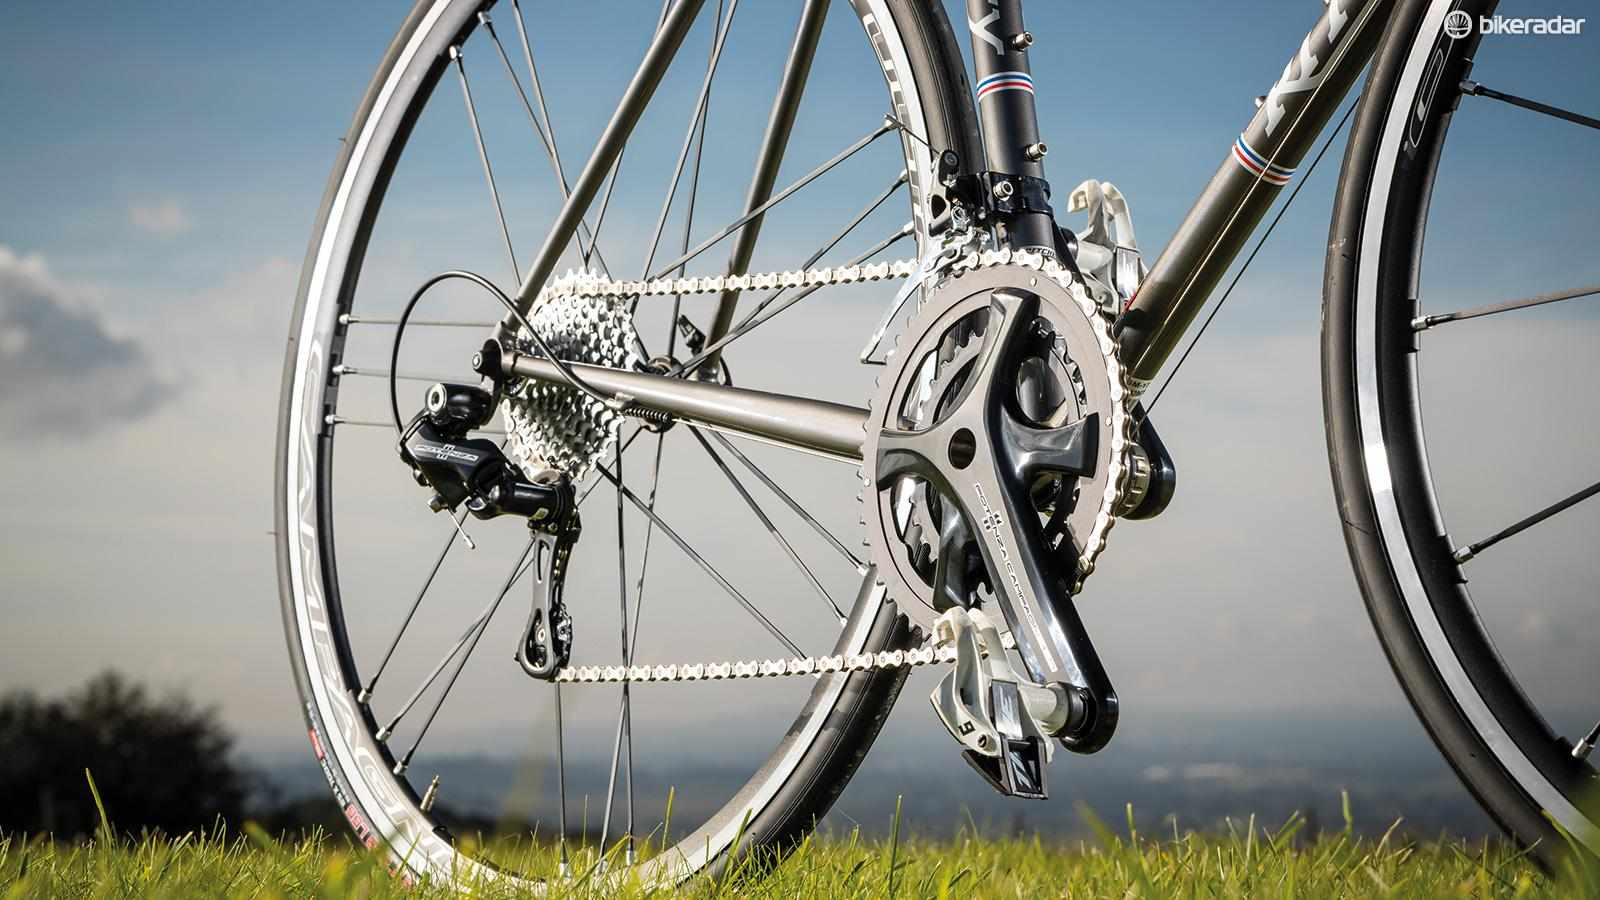 Campagnolo's Potenza groupset